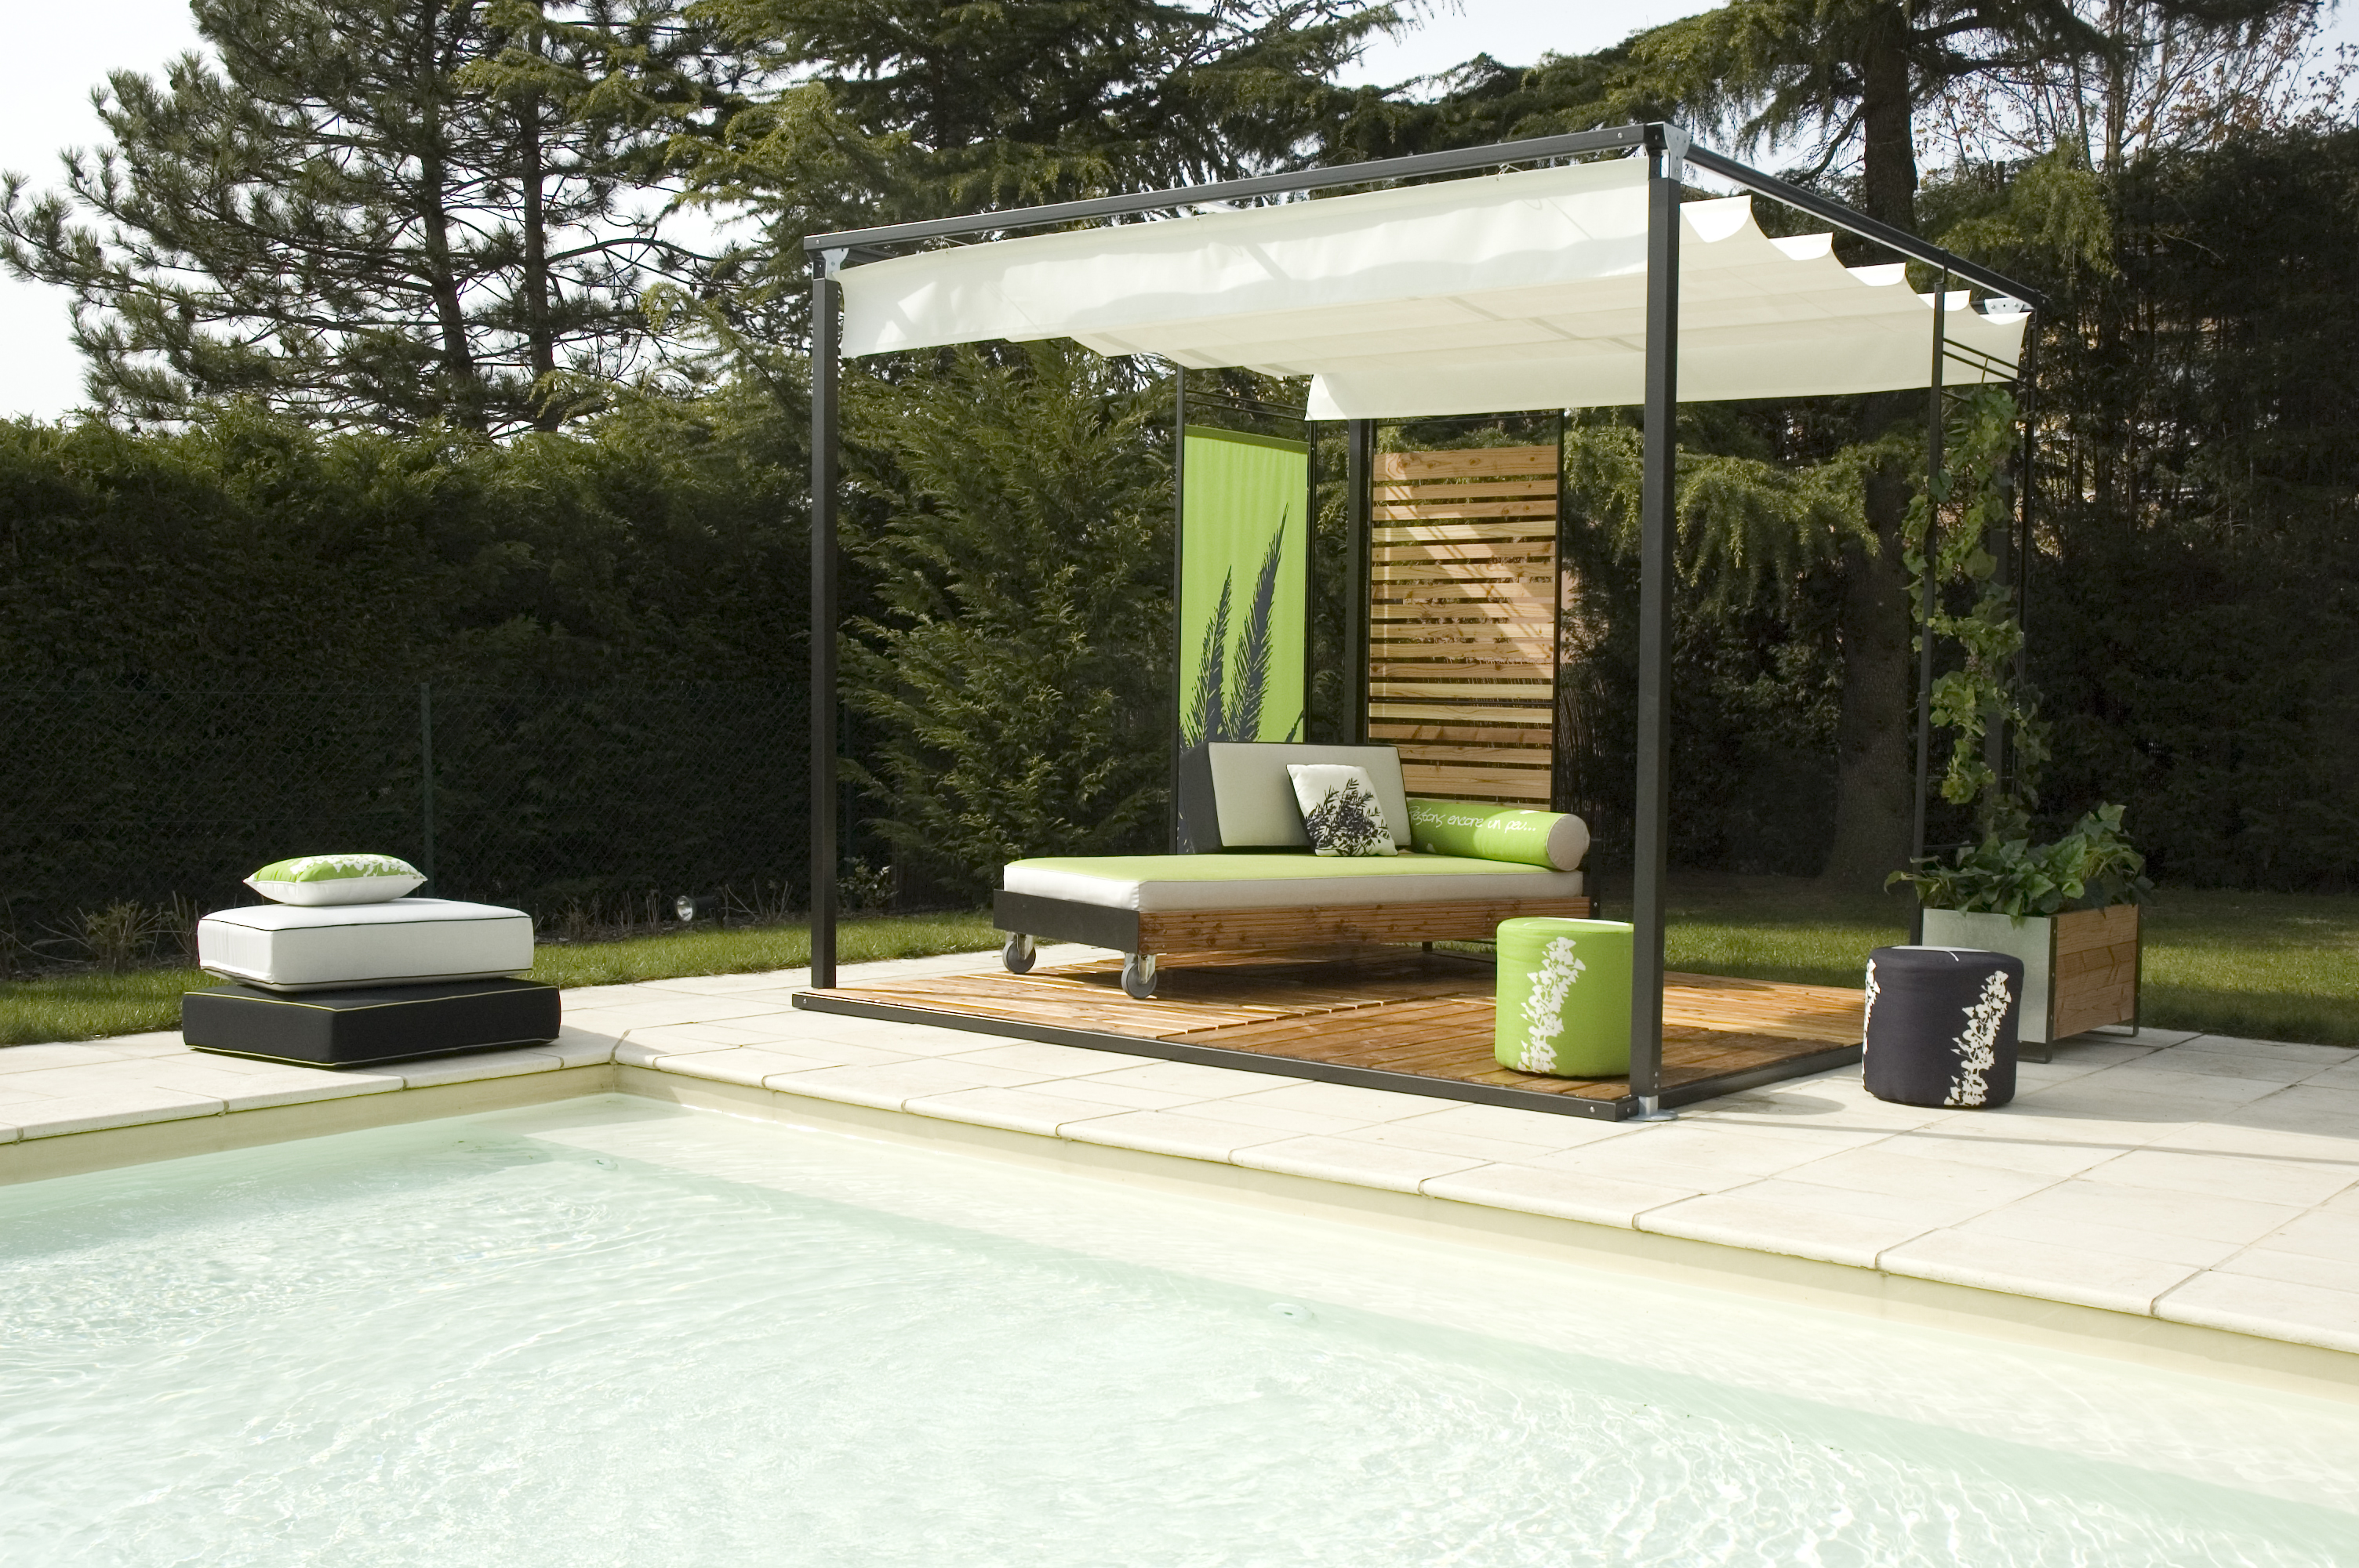 Pergola acier sur mesure l 39 originale design sobre modularit totale for Pergola originale